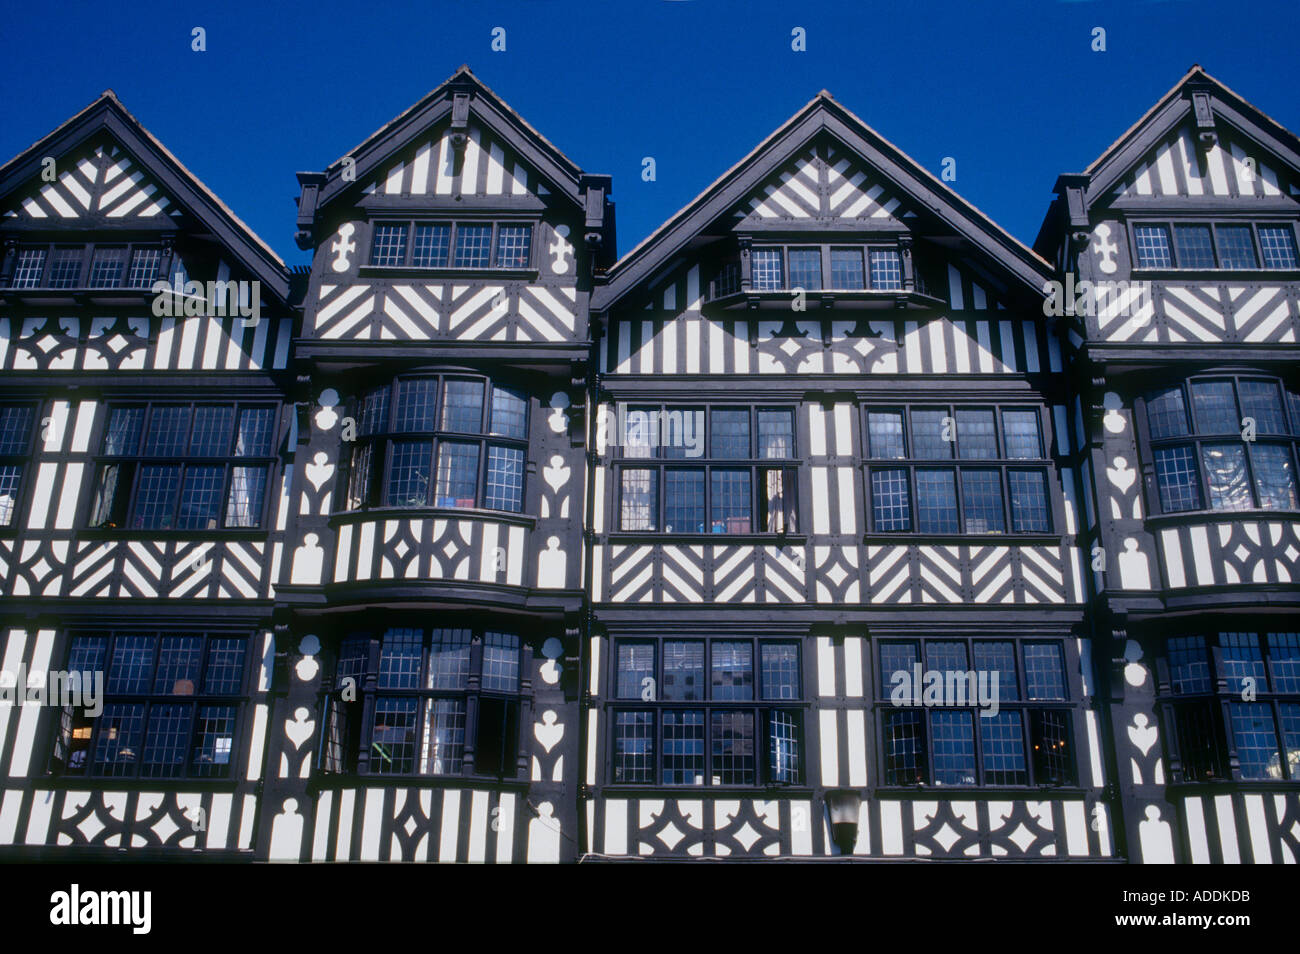 Half timbered Tudor buildings Chester England - Stock Image